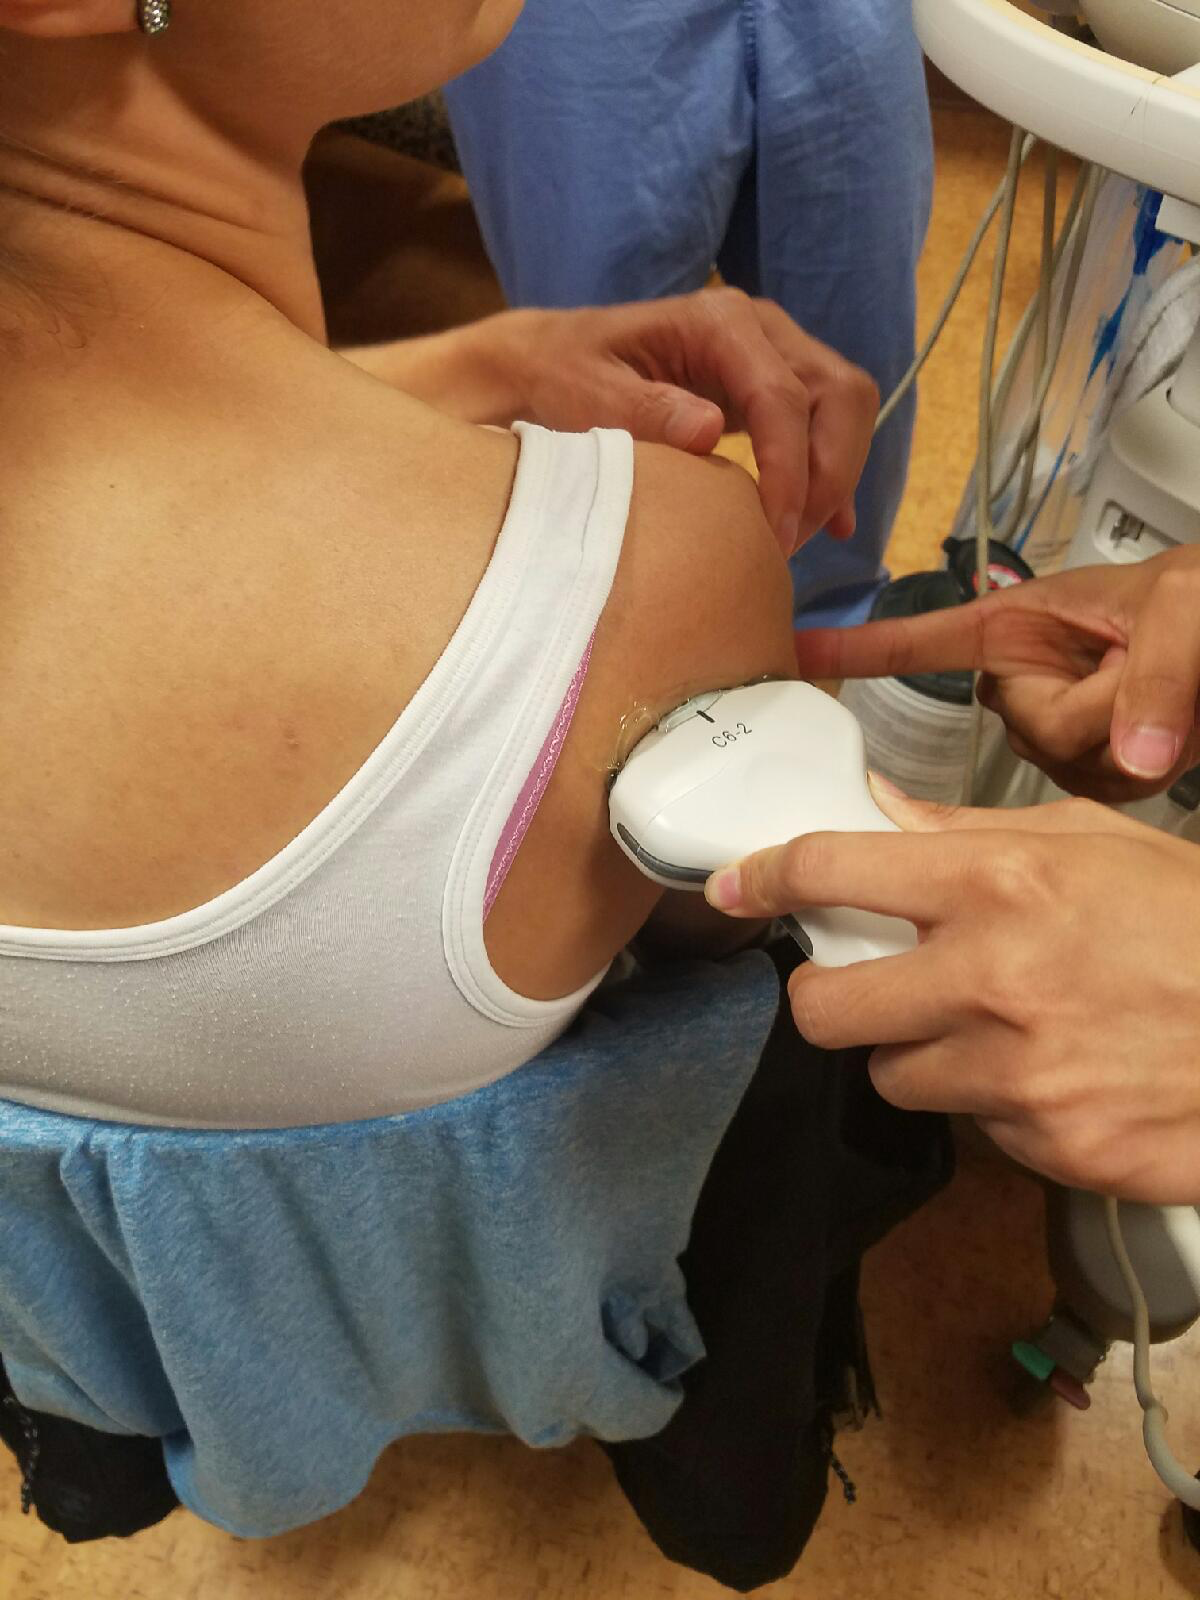 Figure 8: Representation of intra-articular lidocaine injection